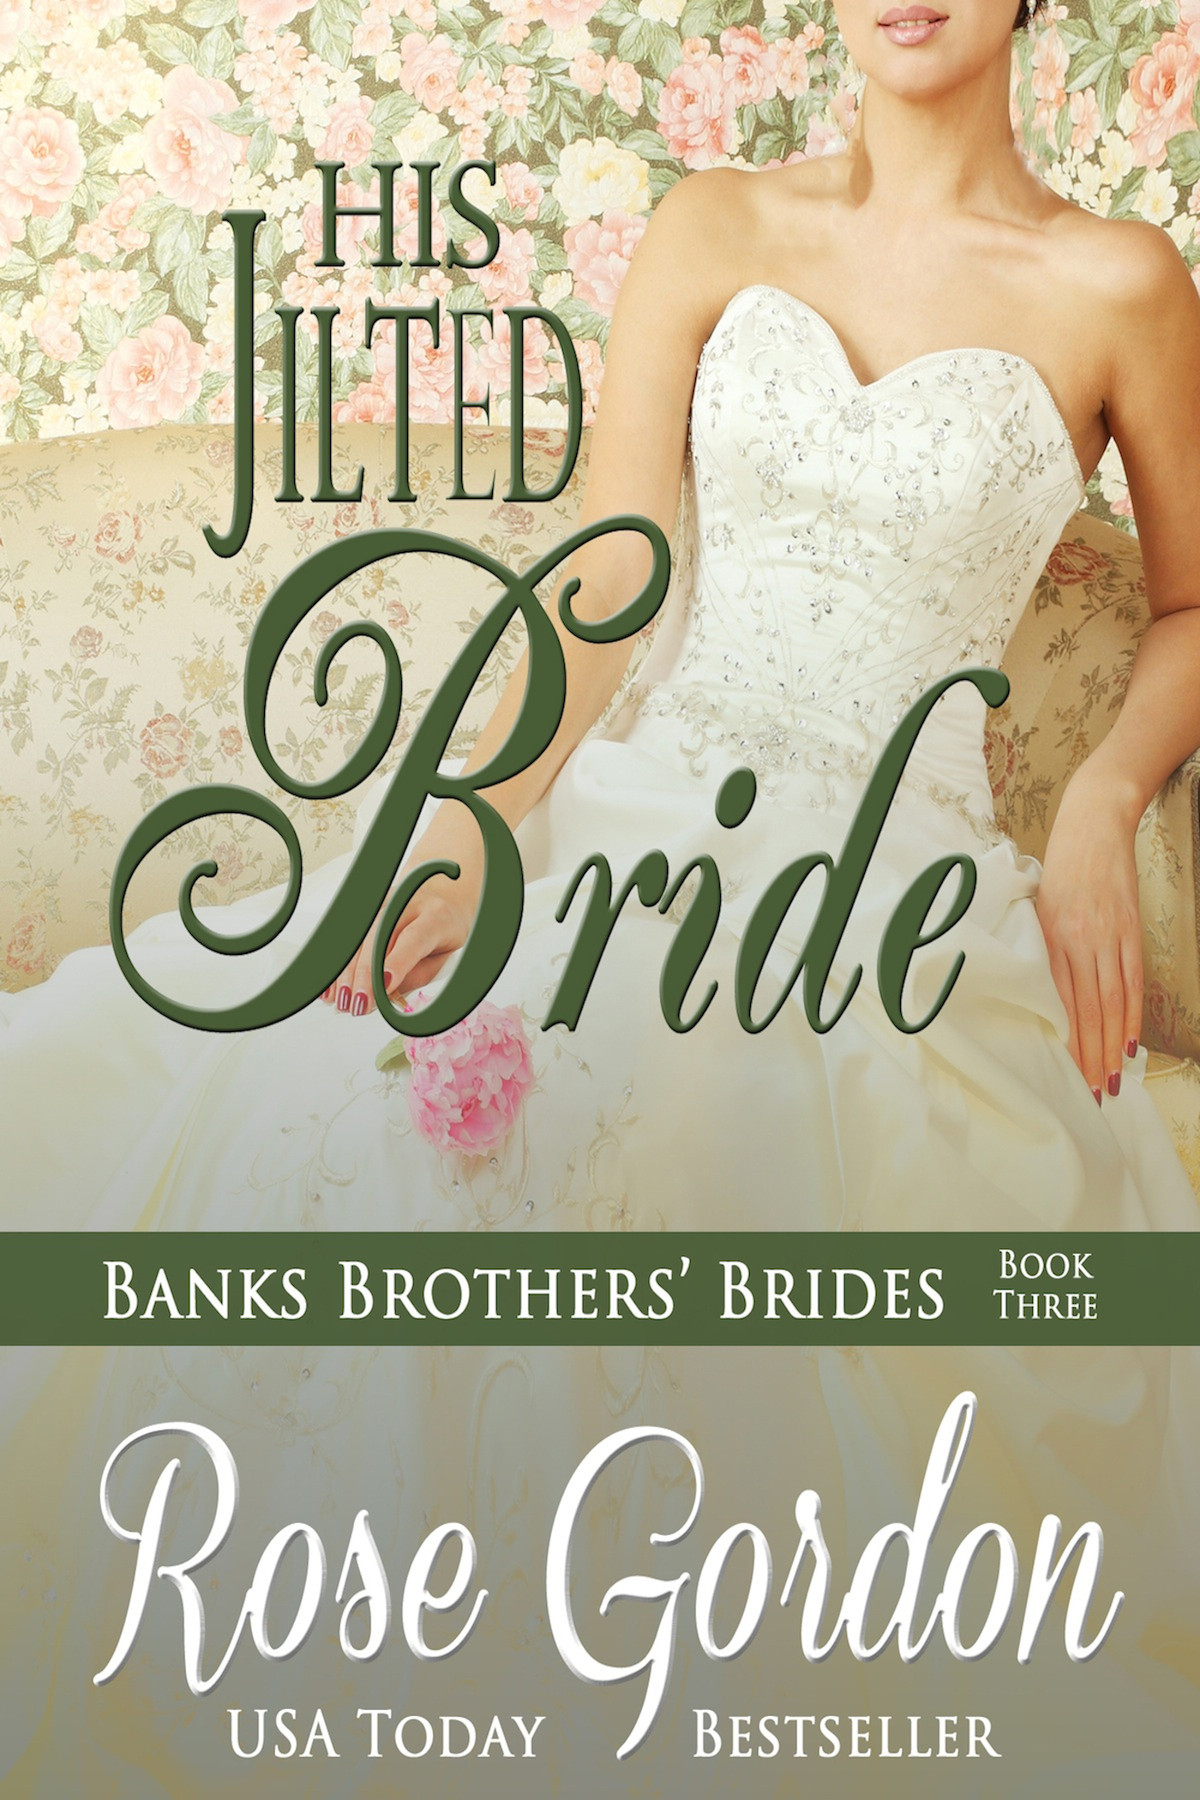 http://rosesromanceramblings.files.wordpress.com/2013/01/his-jilted-bride-cover-1200x1800-copy.jpg